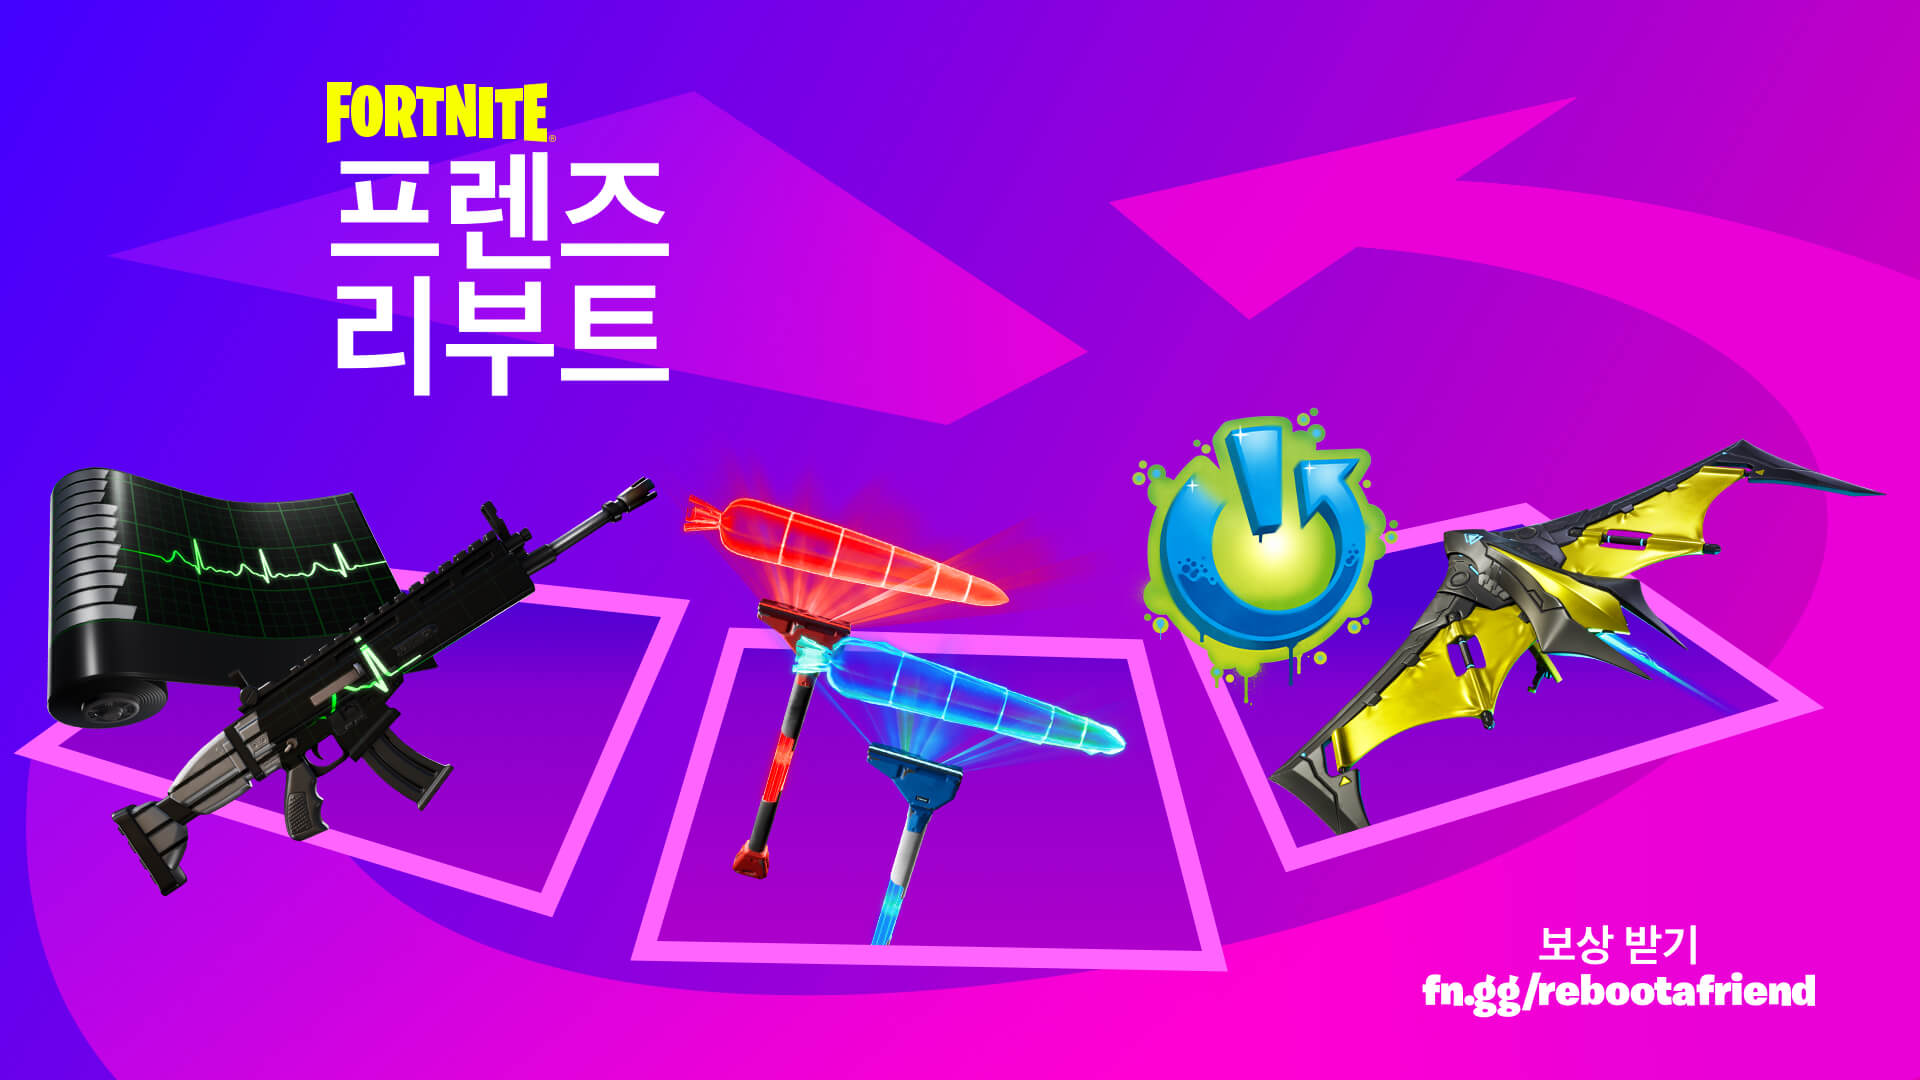 Fortnite Reboot A Friend Rewards KO